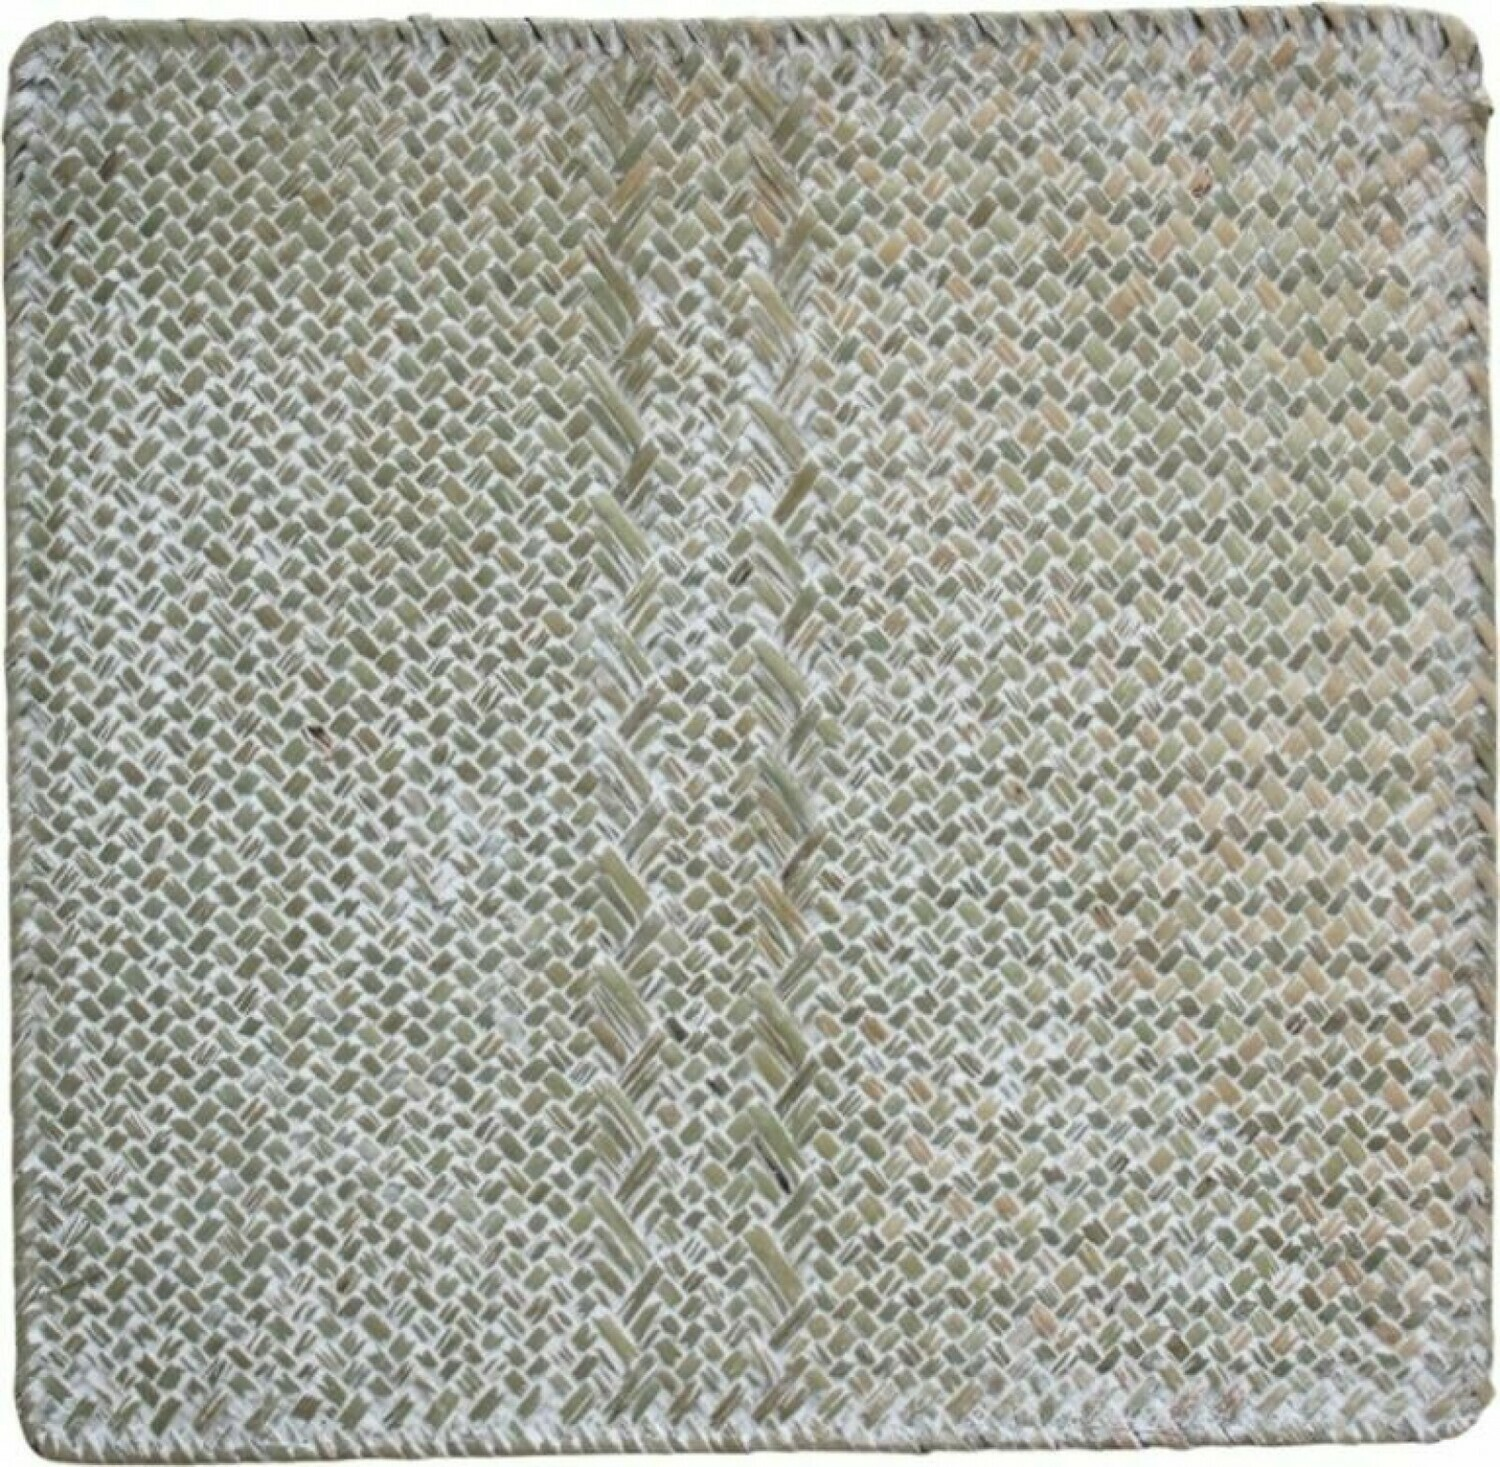 Rattan Table Centrepiece Square - Natural and Whitewash